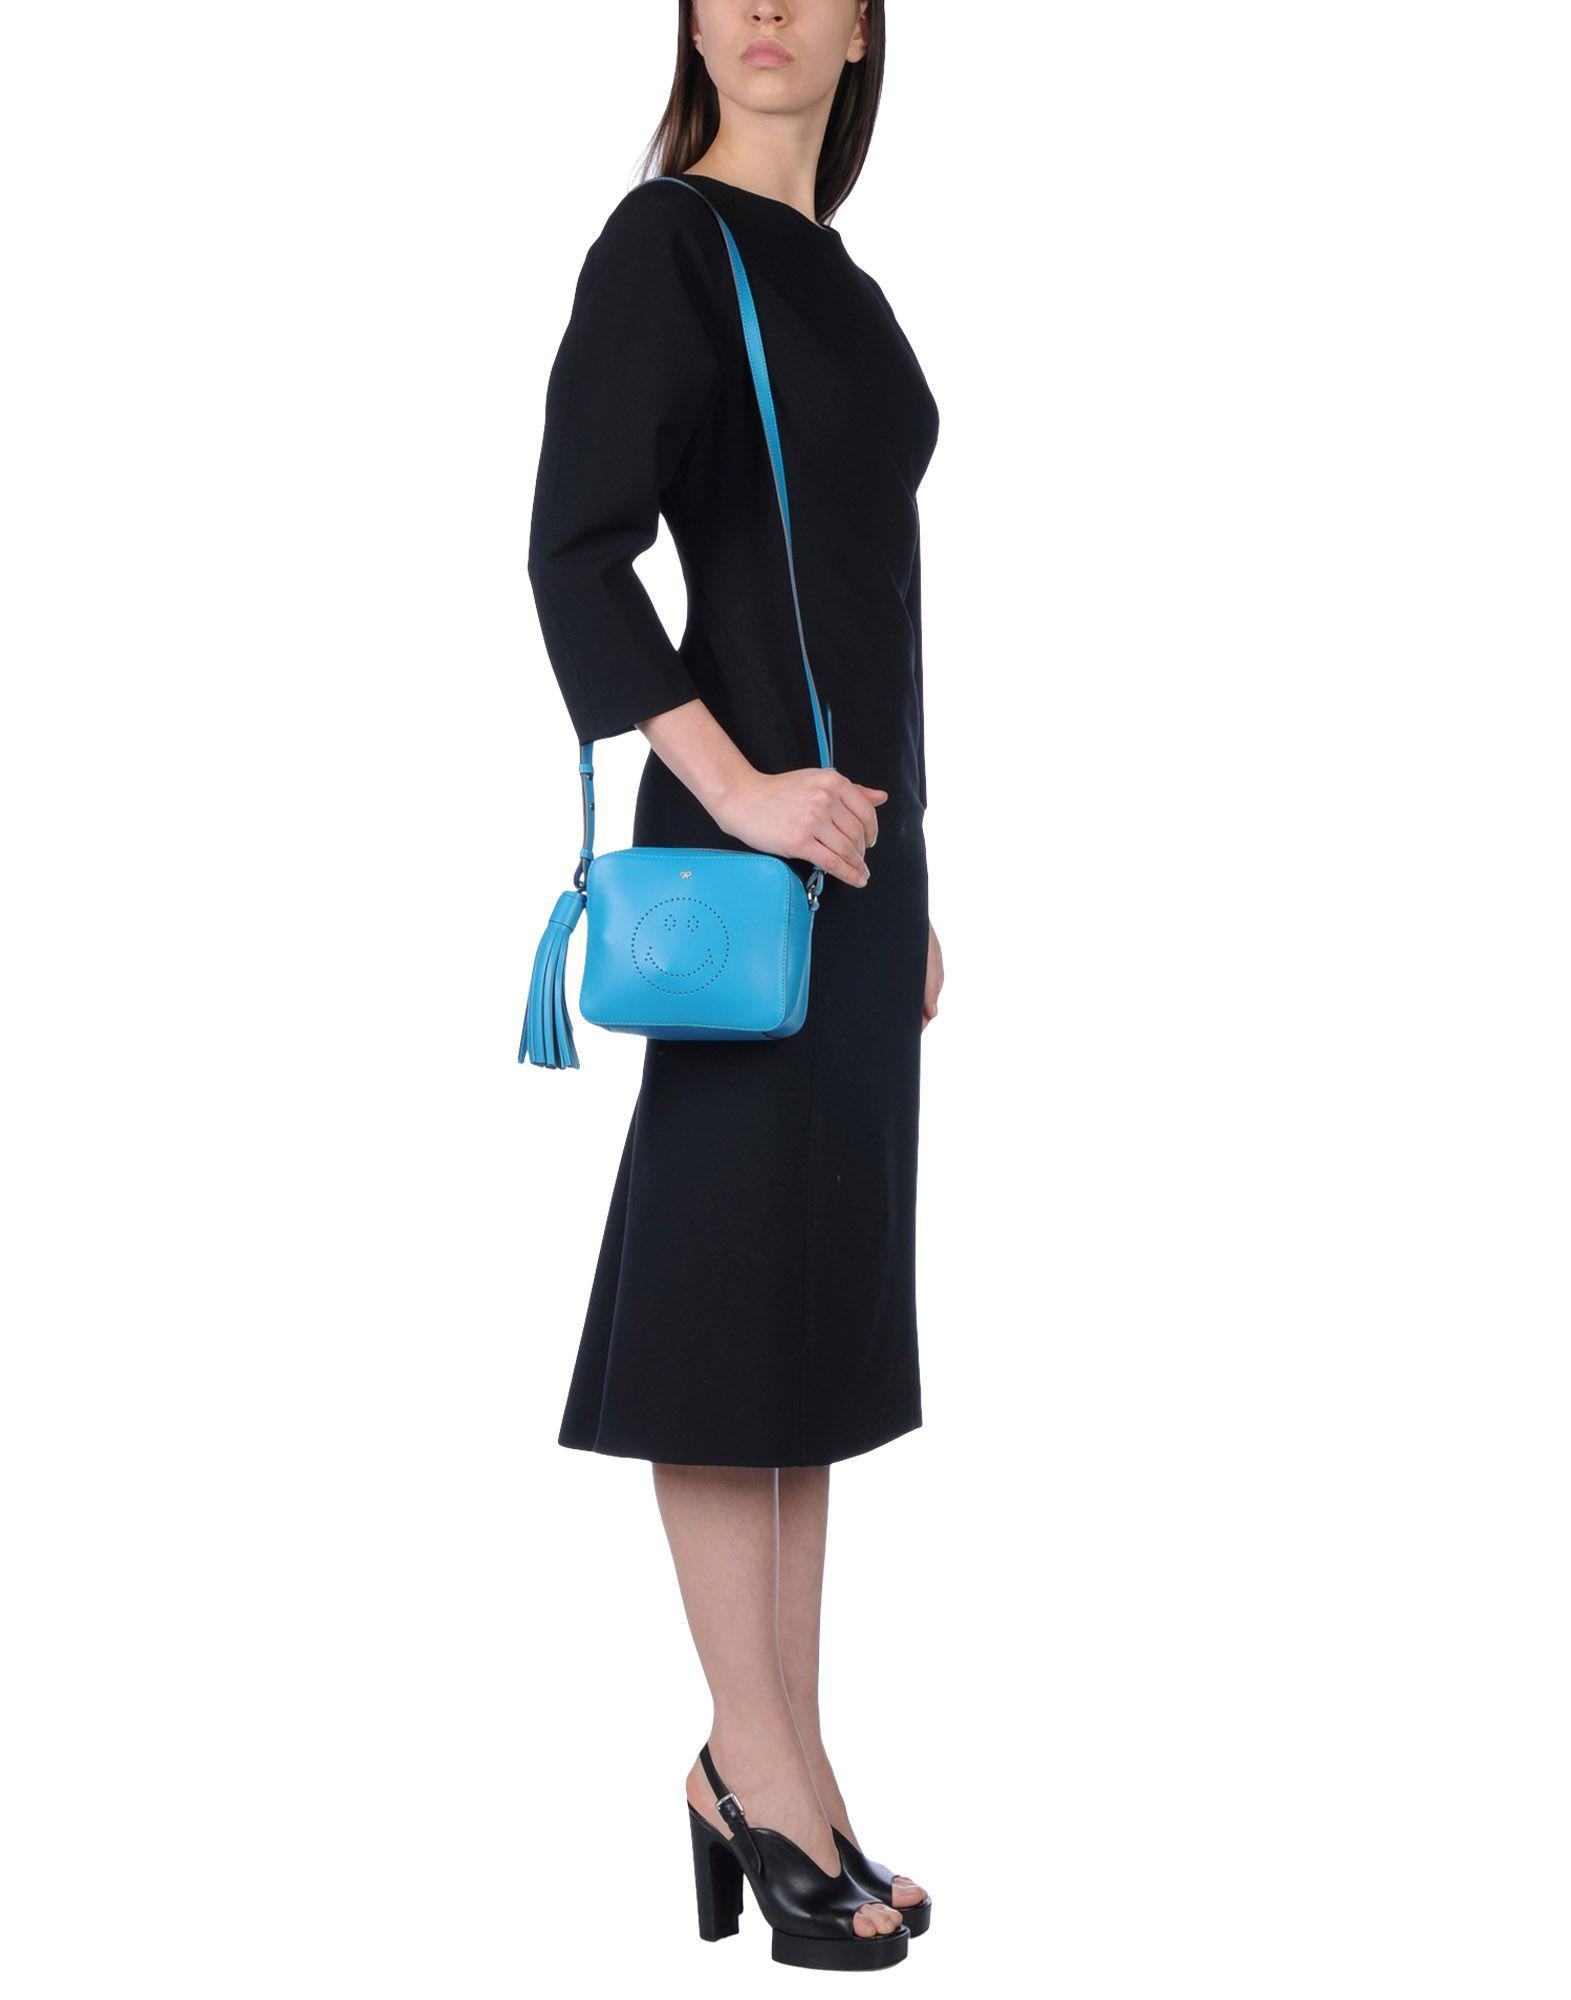 Anya Hindmarch Leather Cross-body Bag in Azure (Blue)